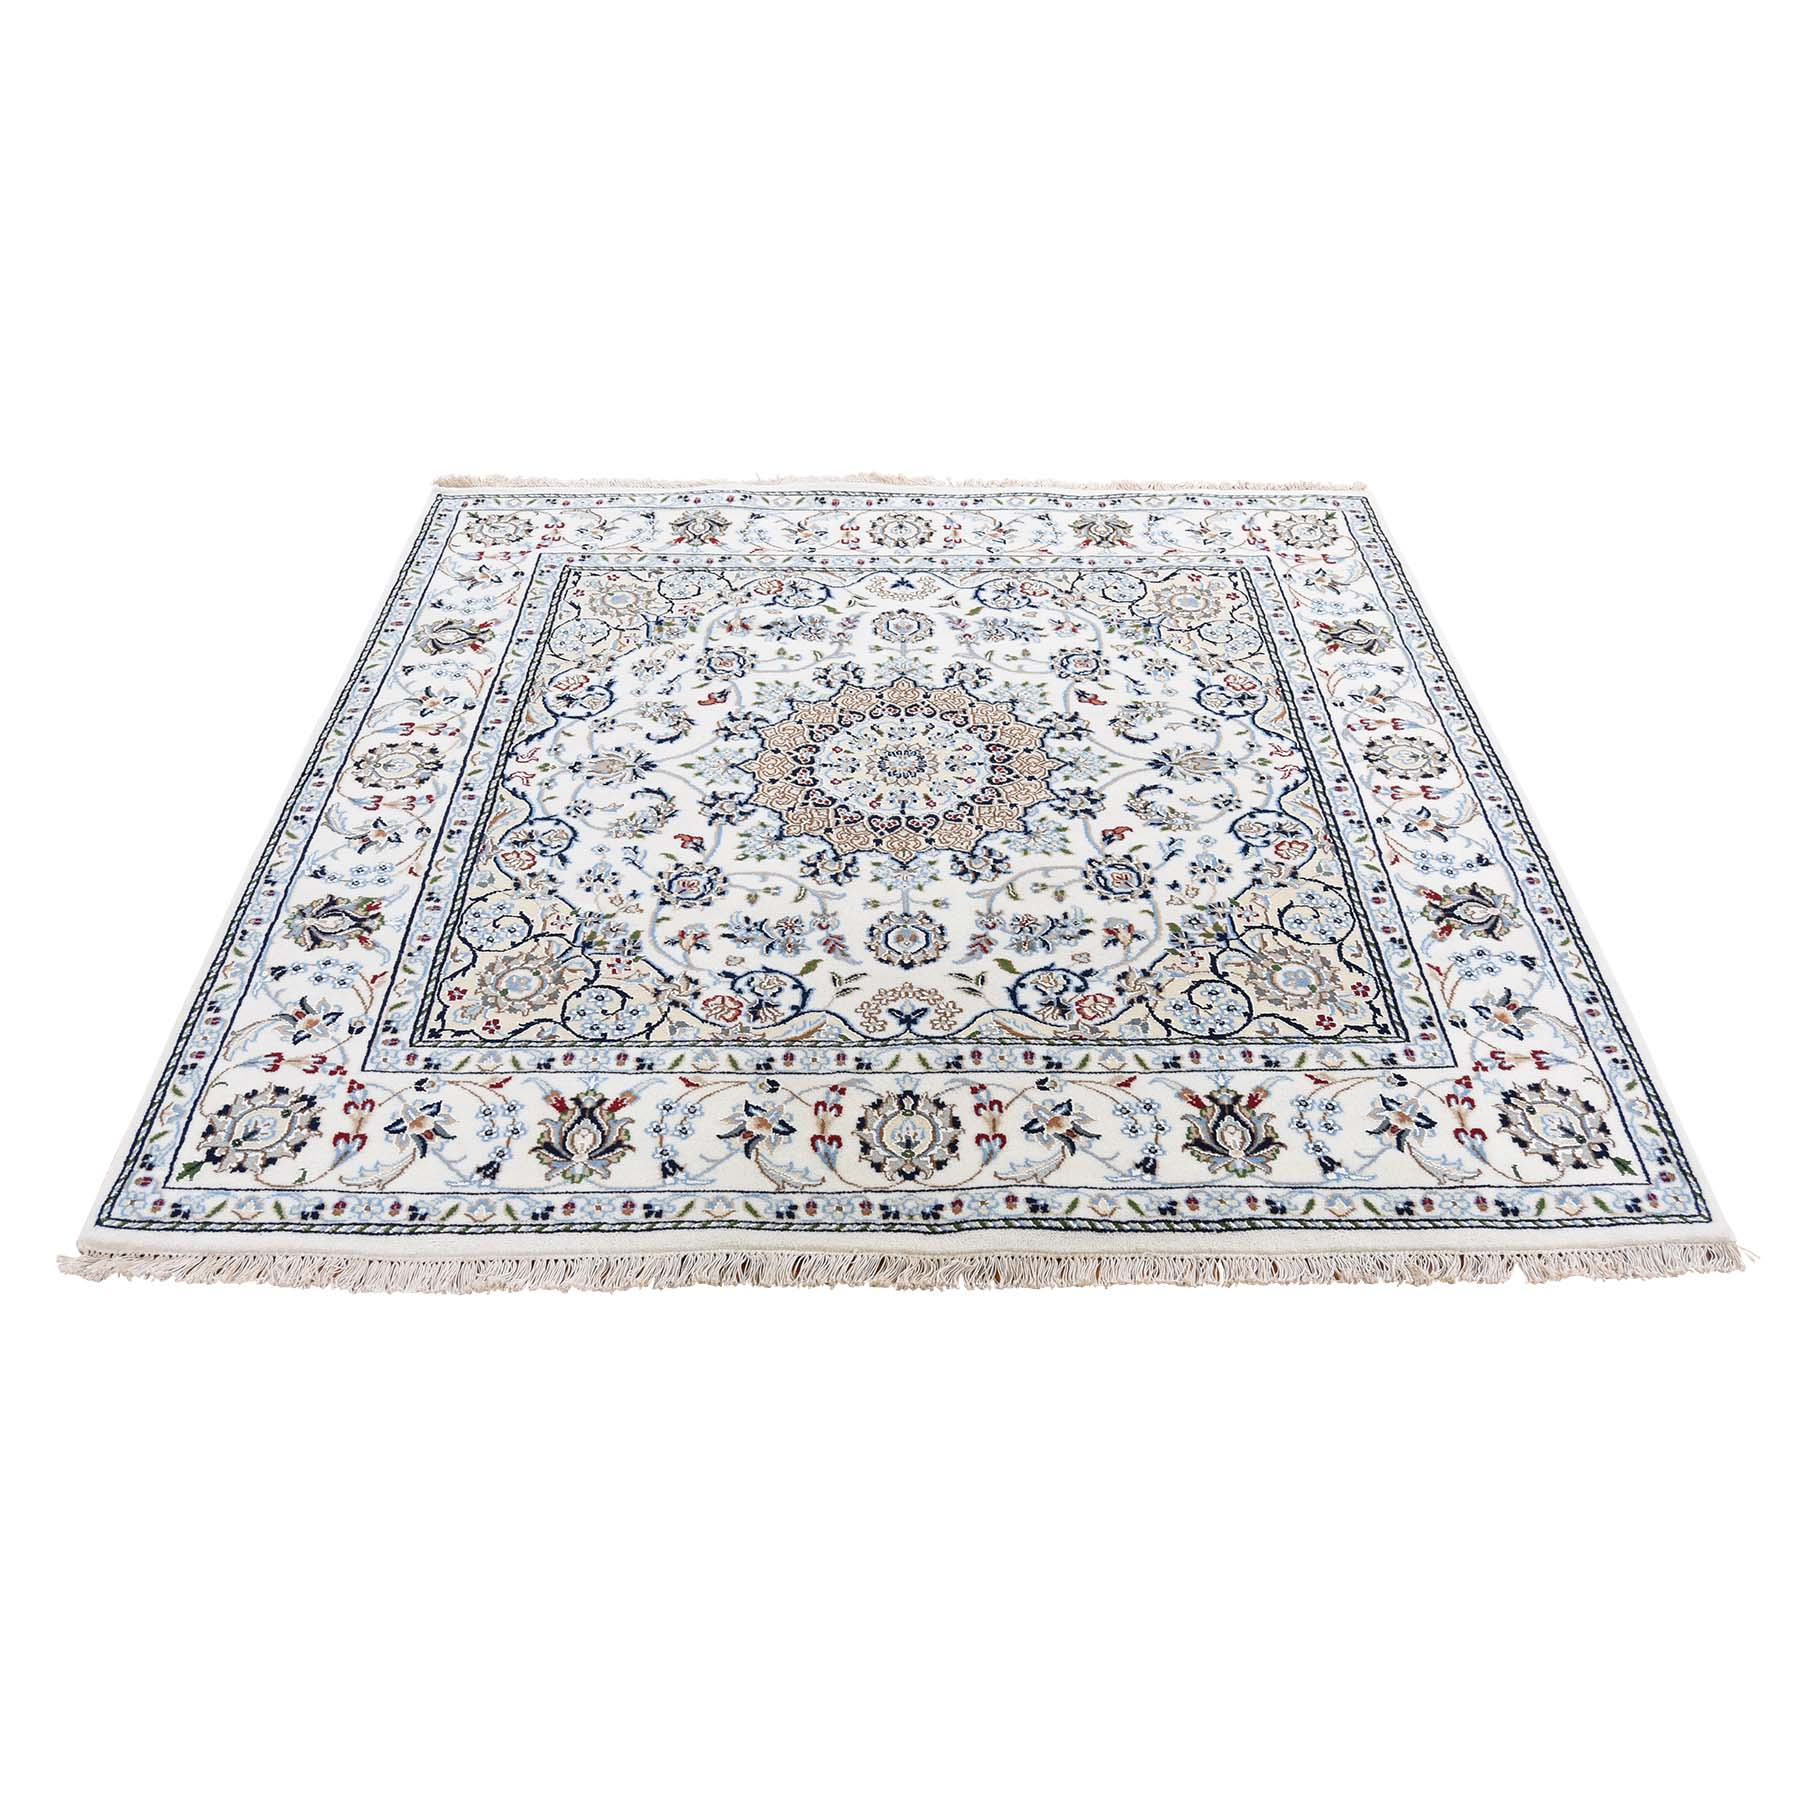 Pirniakan Collection Hand Knotted Ivory Rug No: 0192744